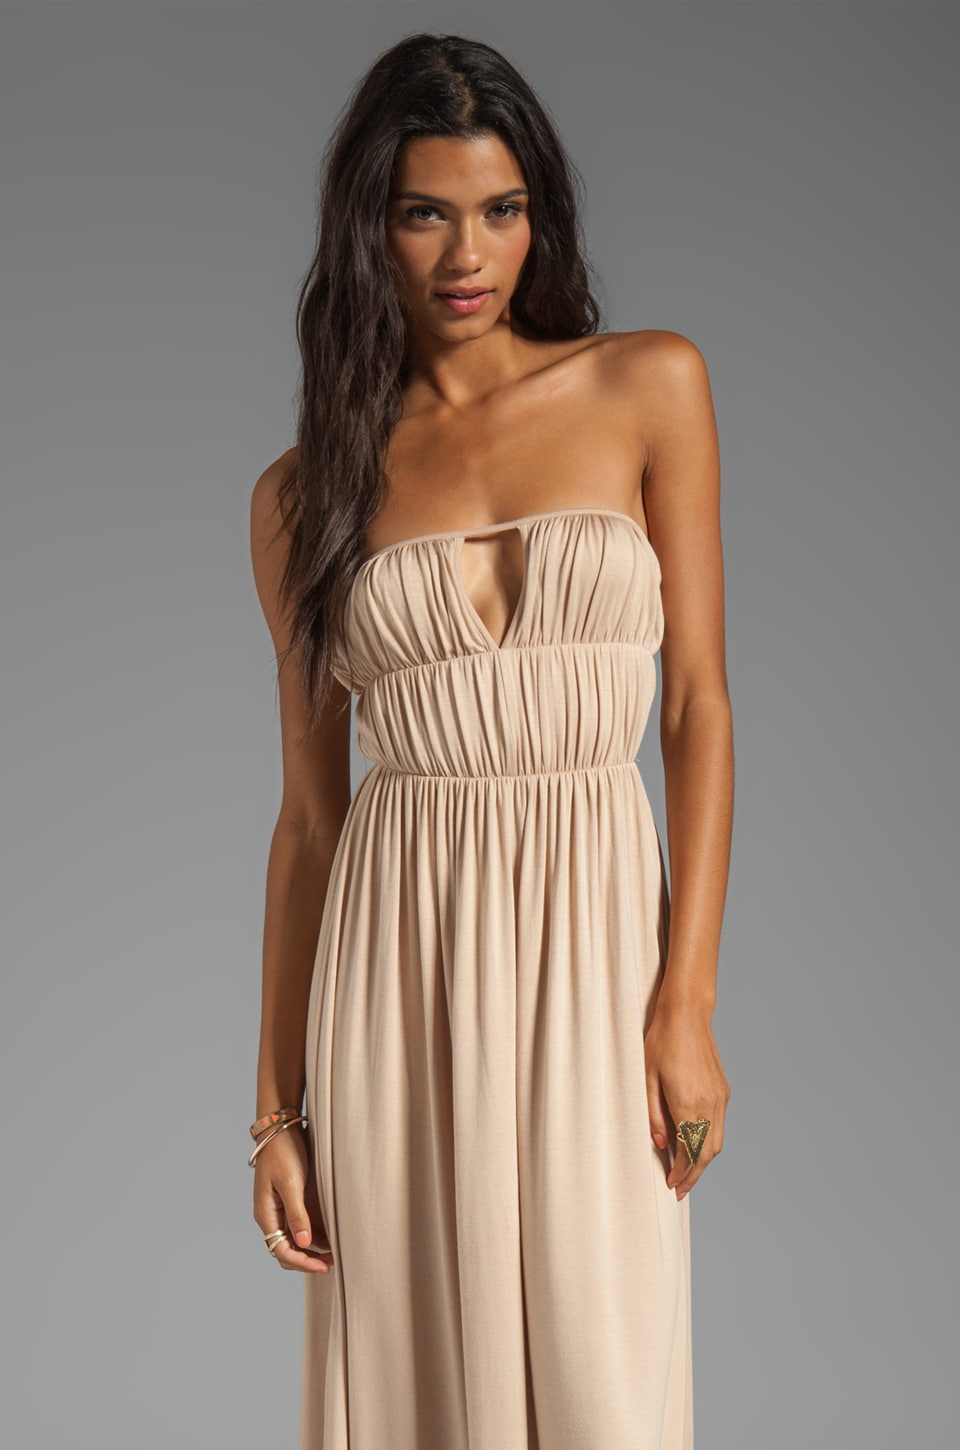 Rachel Pally Lavela Dress in Bamboo